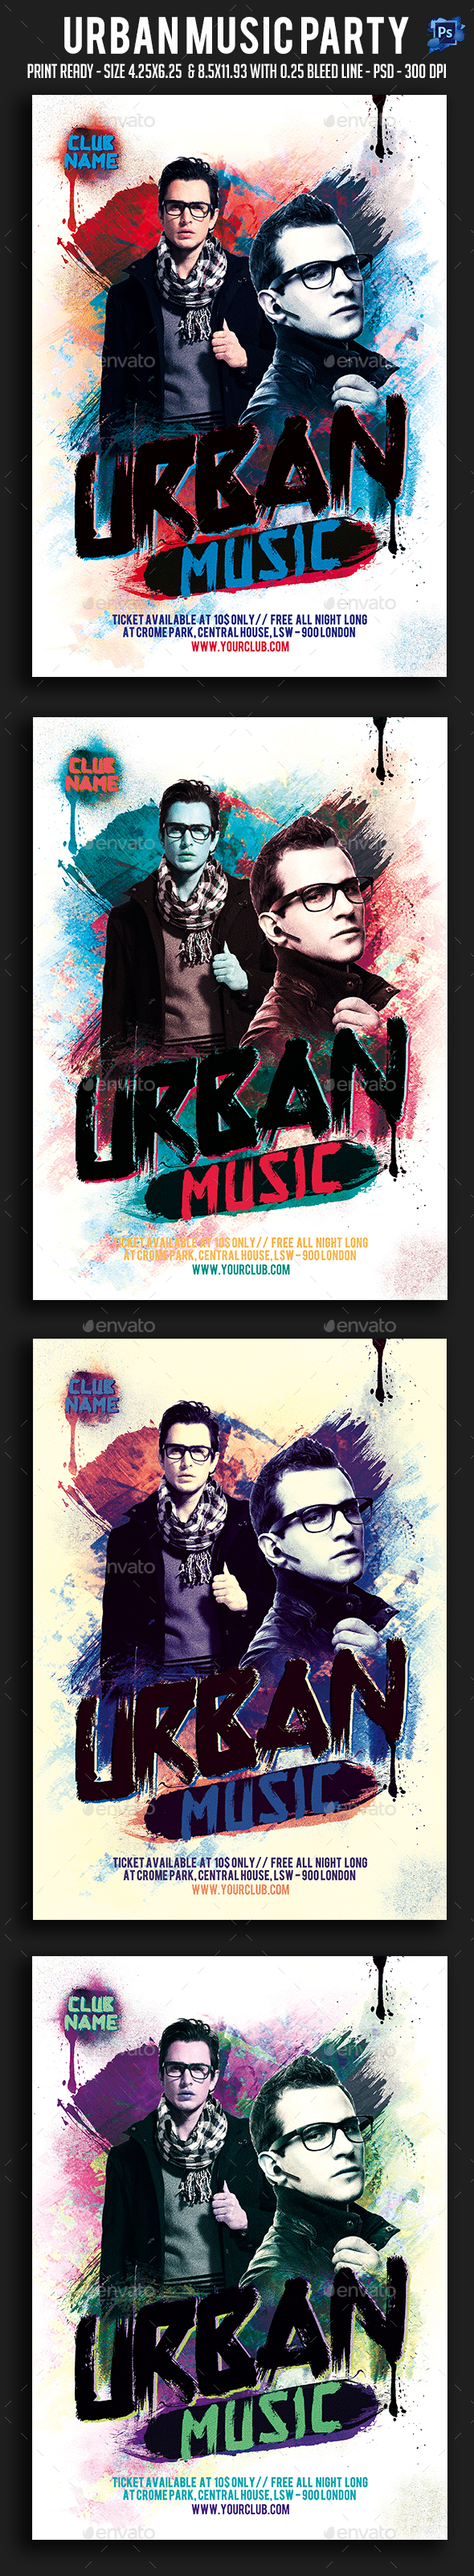 Urban Music Party Flyer - Clubs & Parties Events